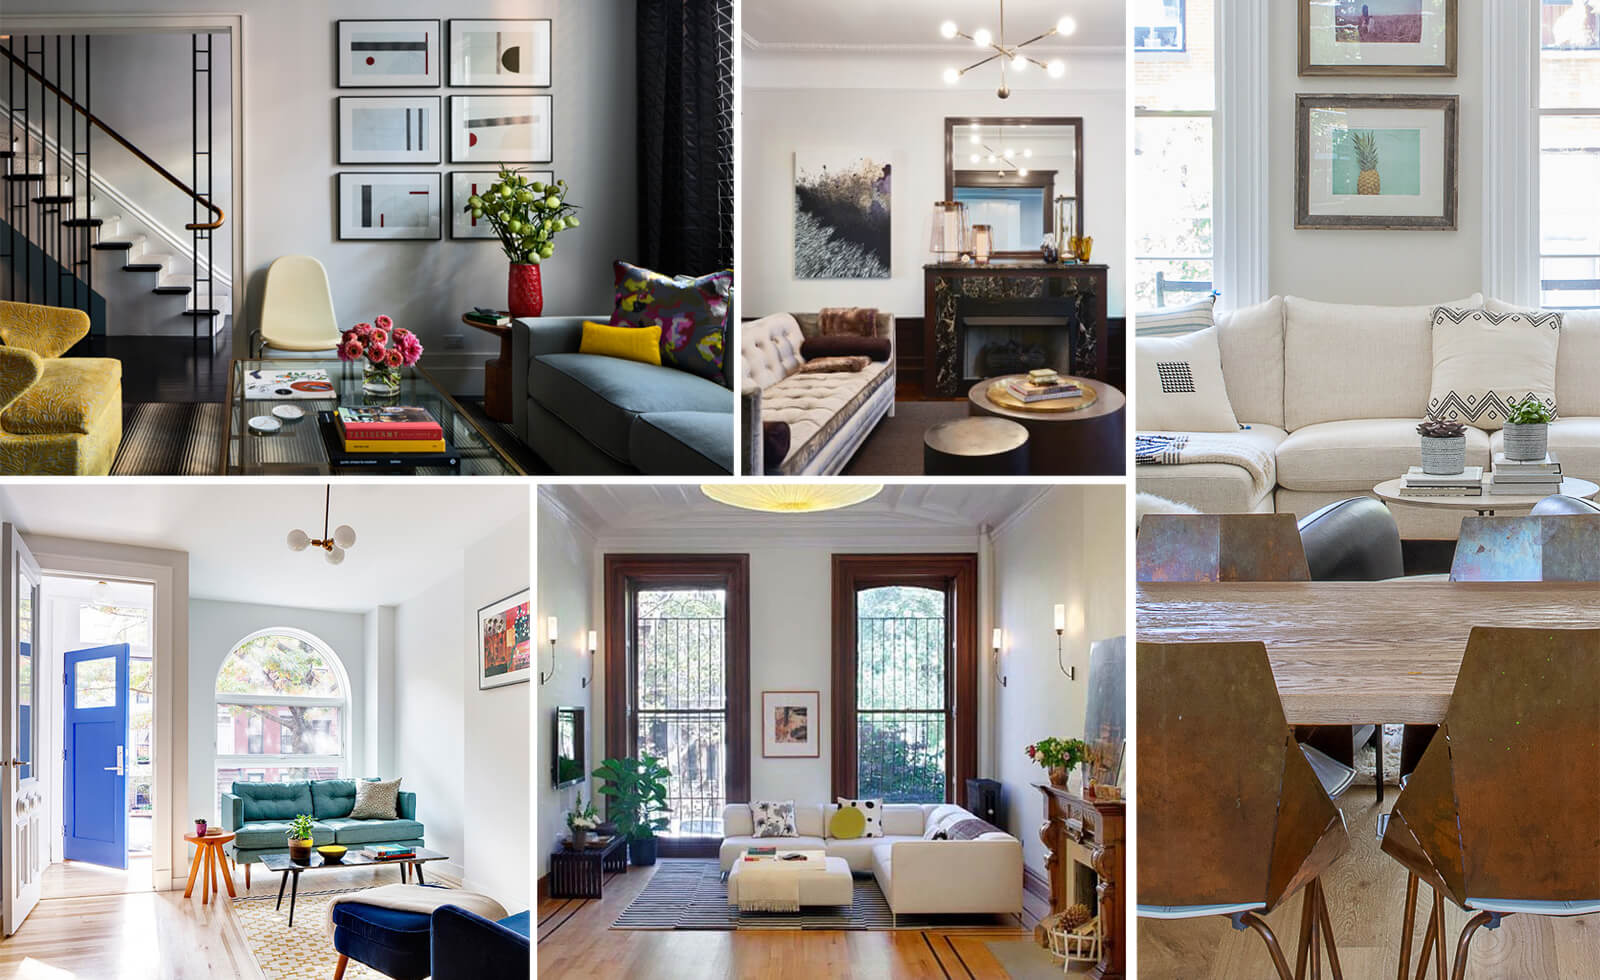 Interior Design Ideas At Home: Best Pro Tips On How To Arrange Furniture In A Brownstone